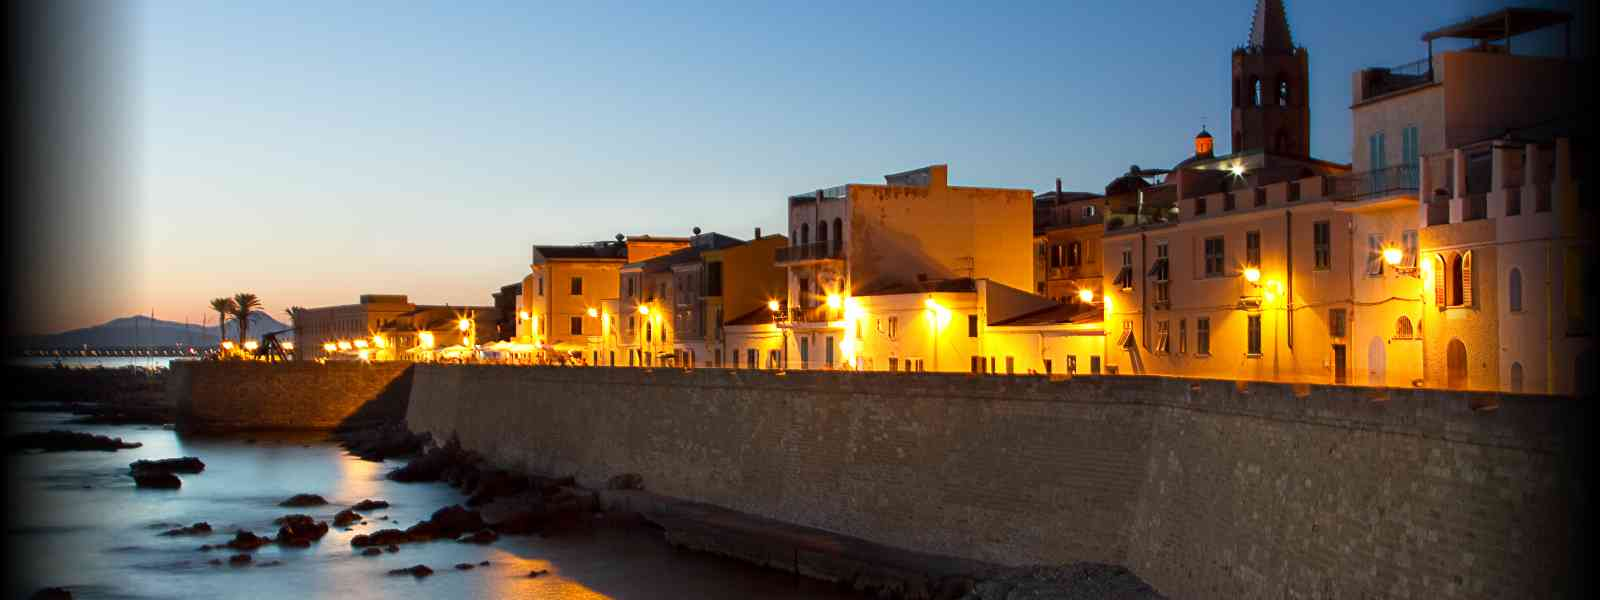 alghero chat sites Search 20 hotels near piazza civica (alghero) kayak searches hundreds of travel sites to help you find and book the hotel that suits you best.